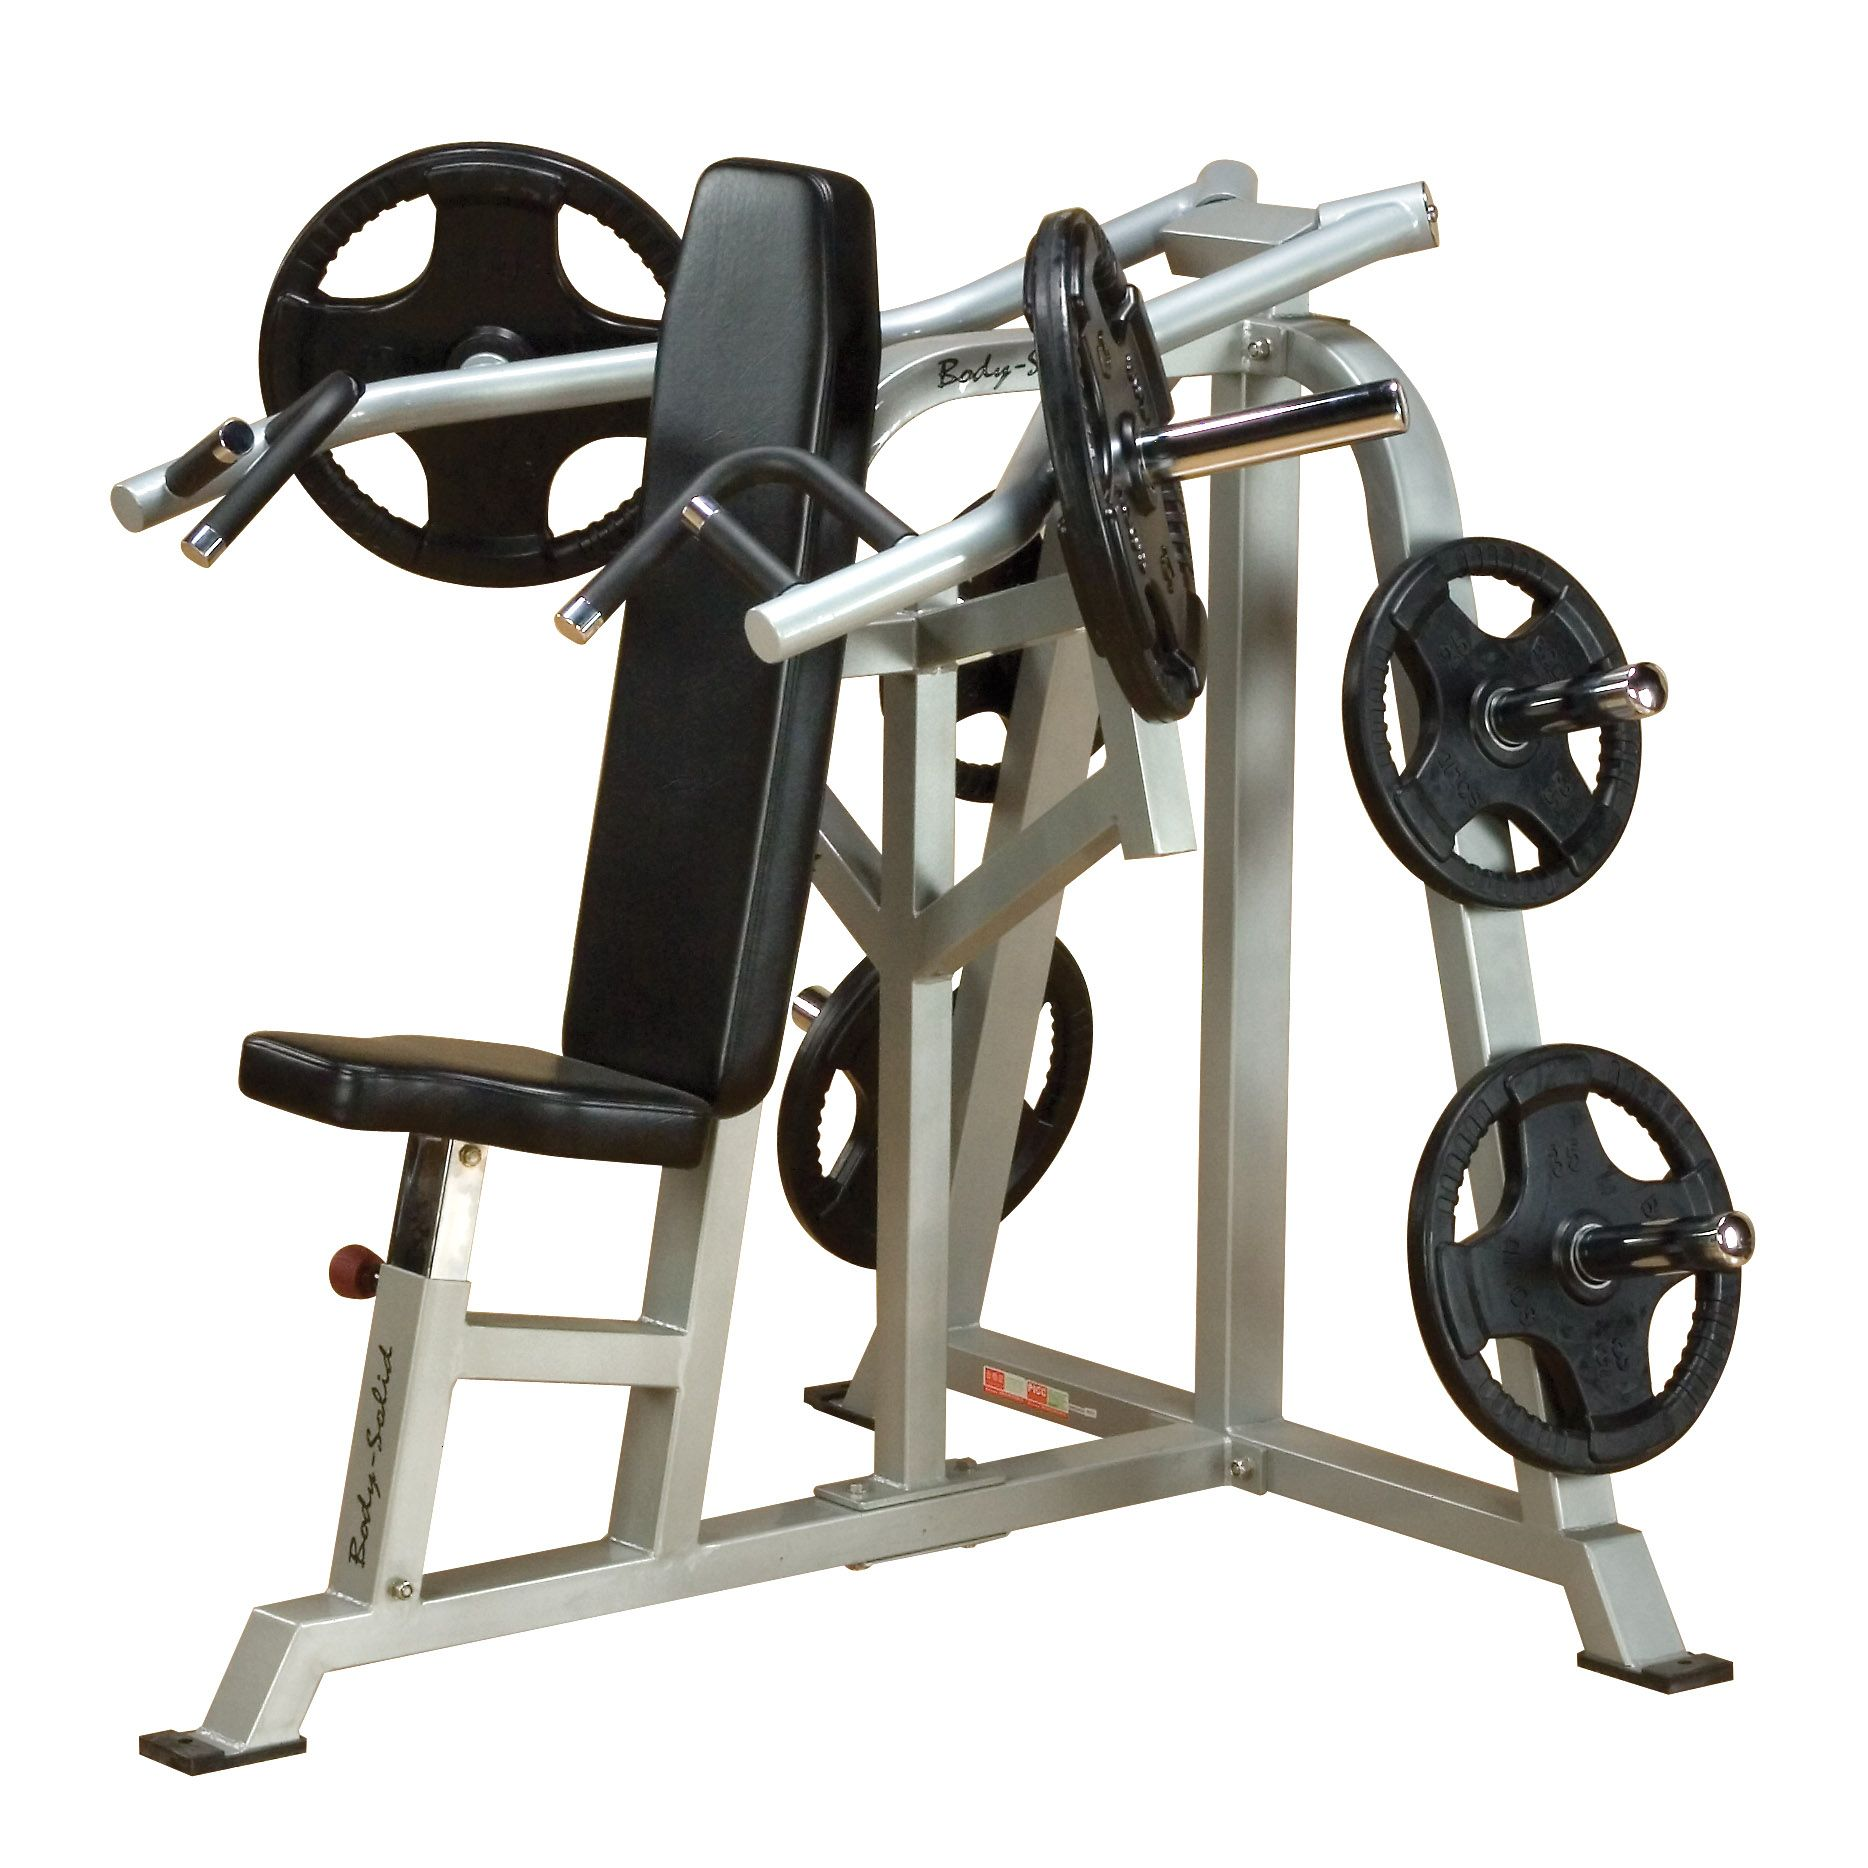 Gym Equipment Upholstery: Body Solid Home Gym Equipment This Looks Insightful. Take